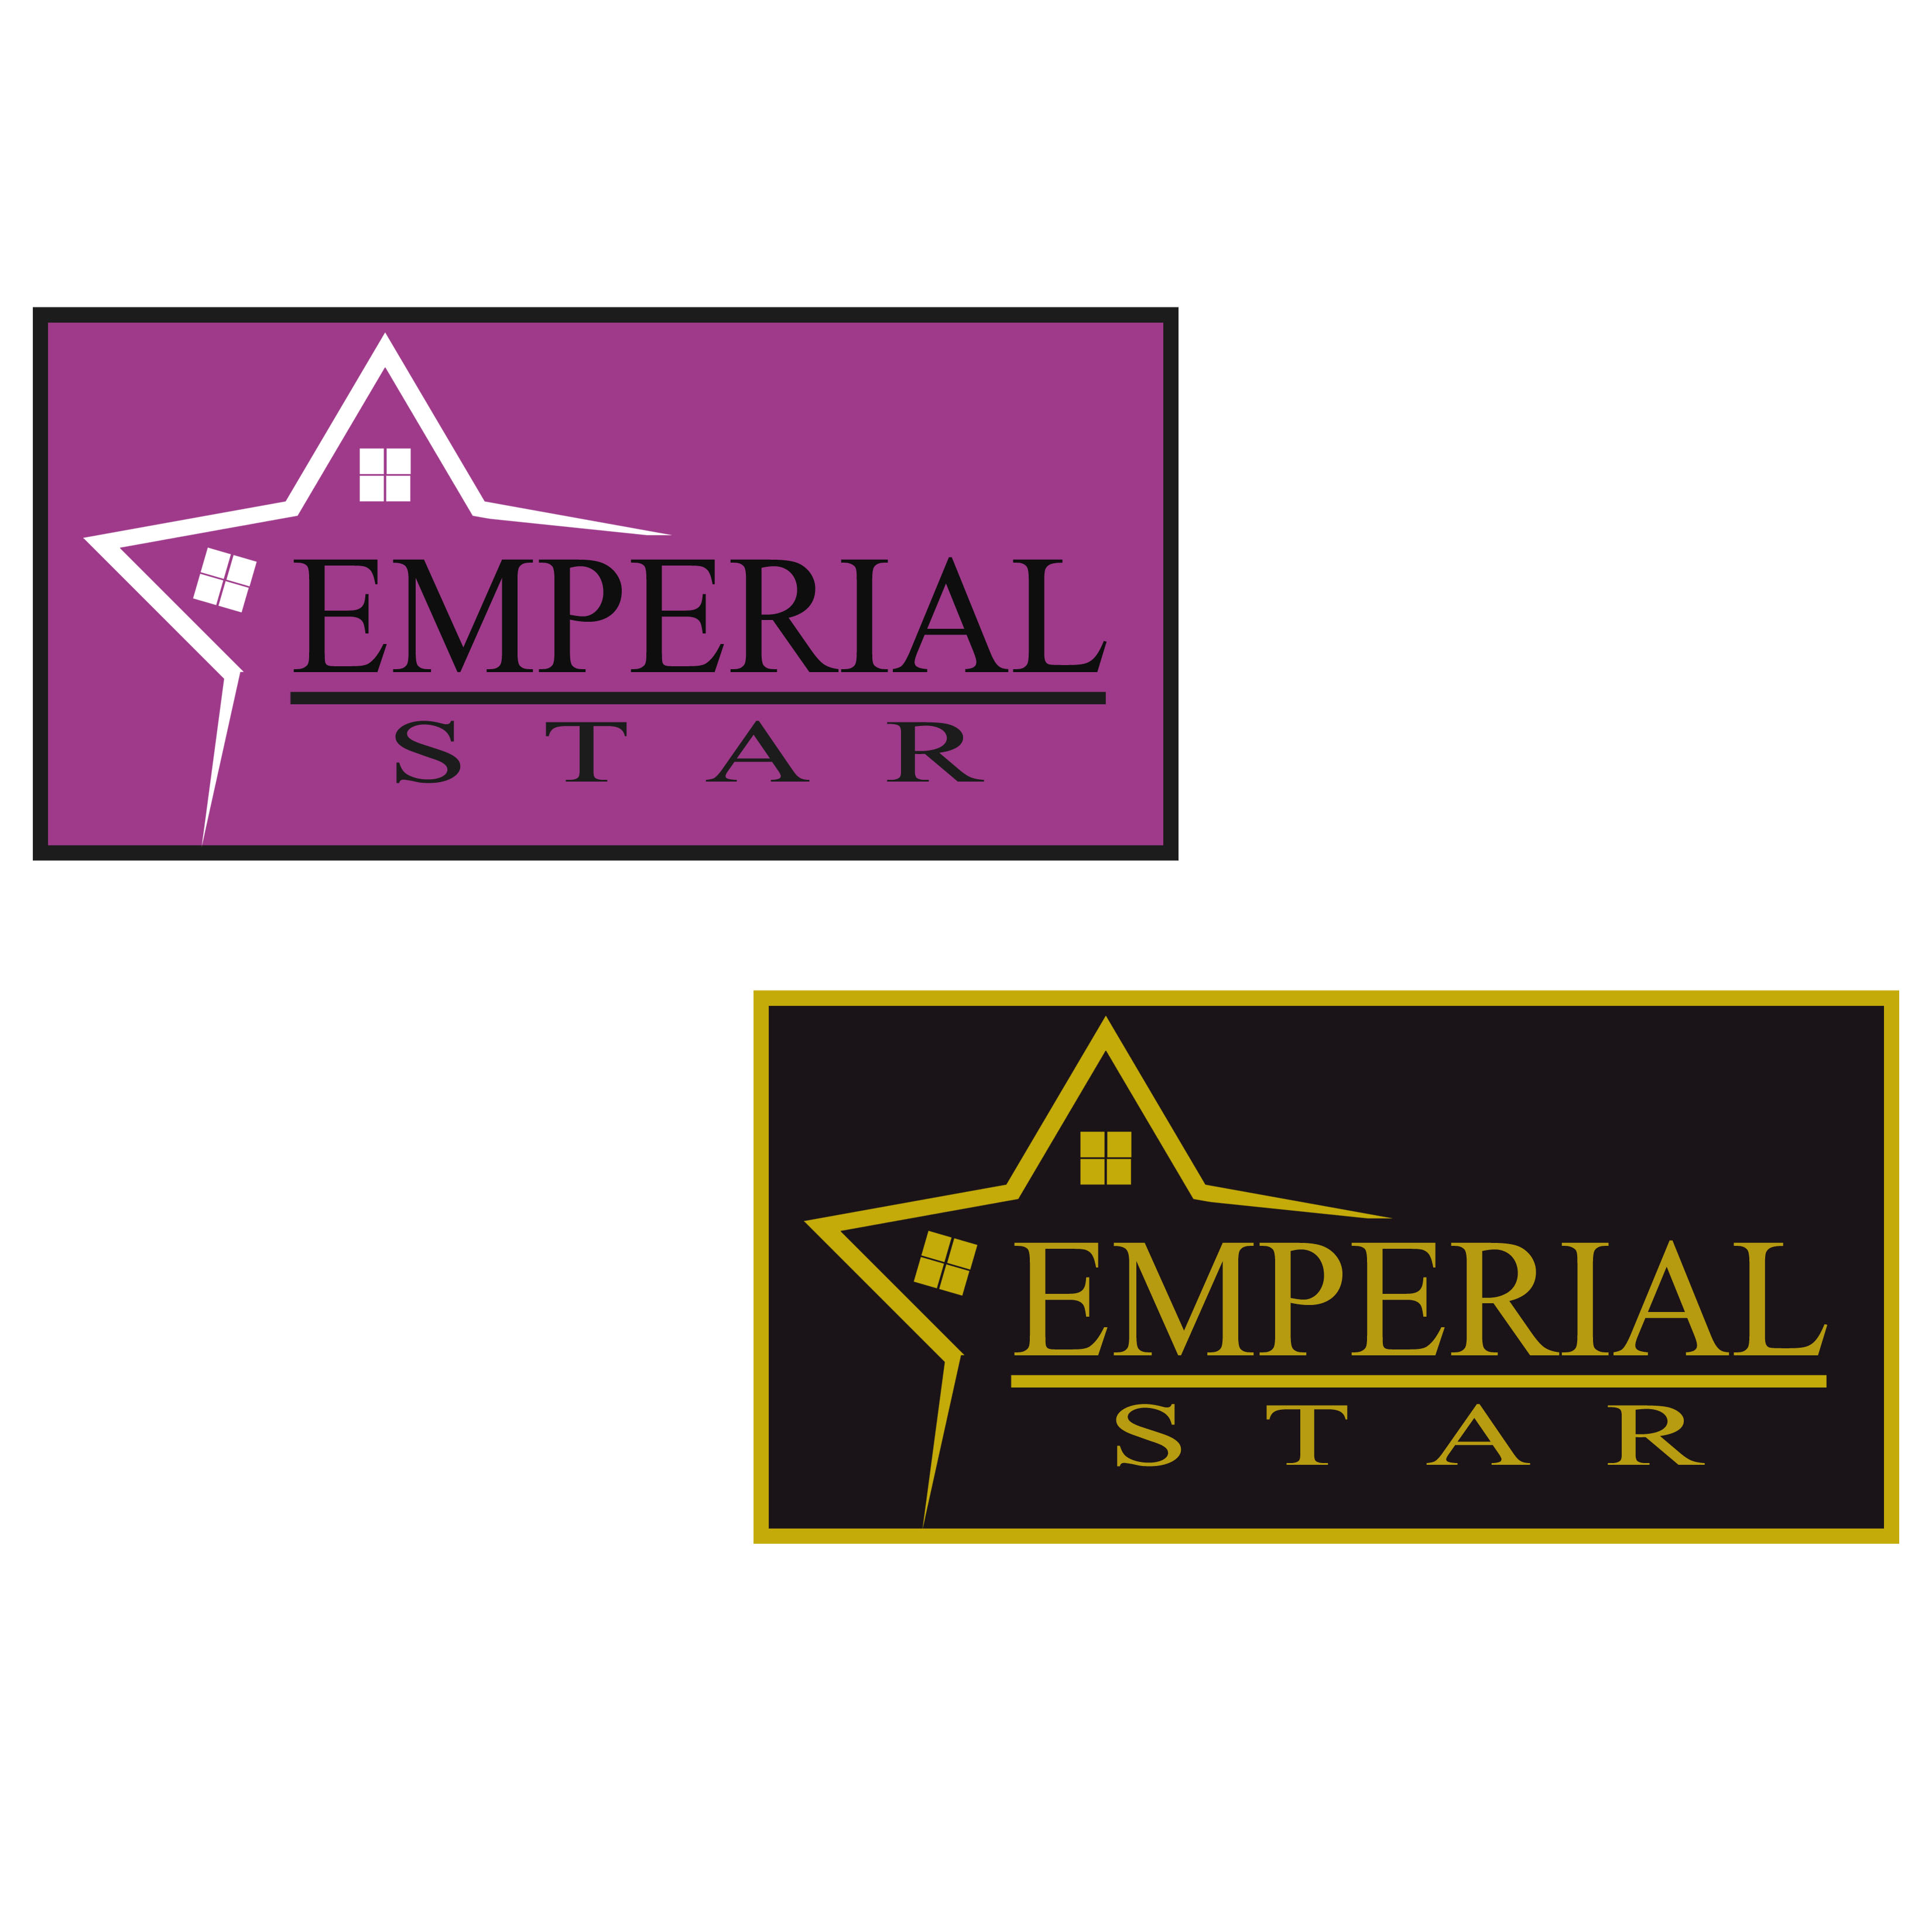 Logo Design by Alan Esclamado - Entry No. 123 in the Logo Design Contest Emperial Star Logo Design.